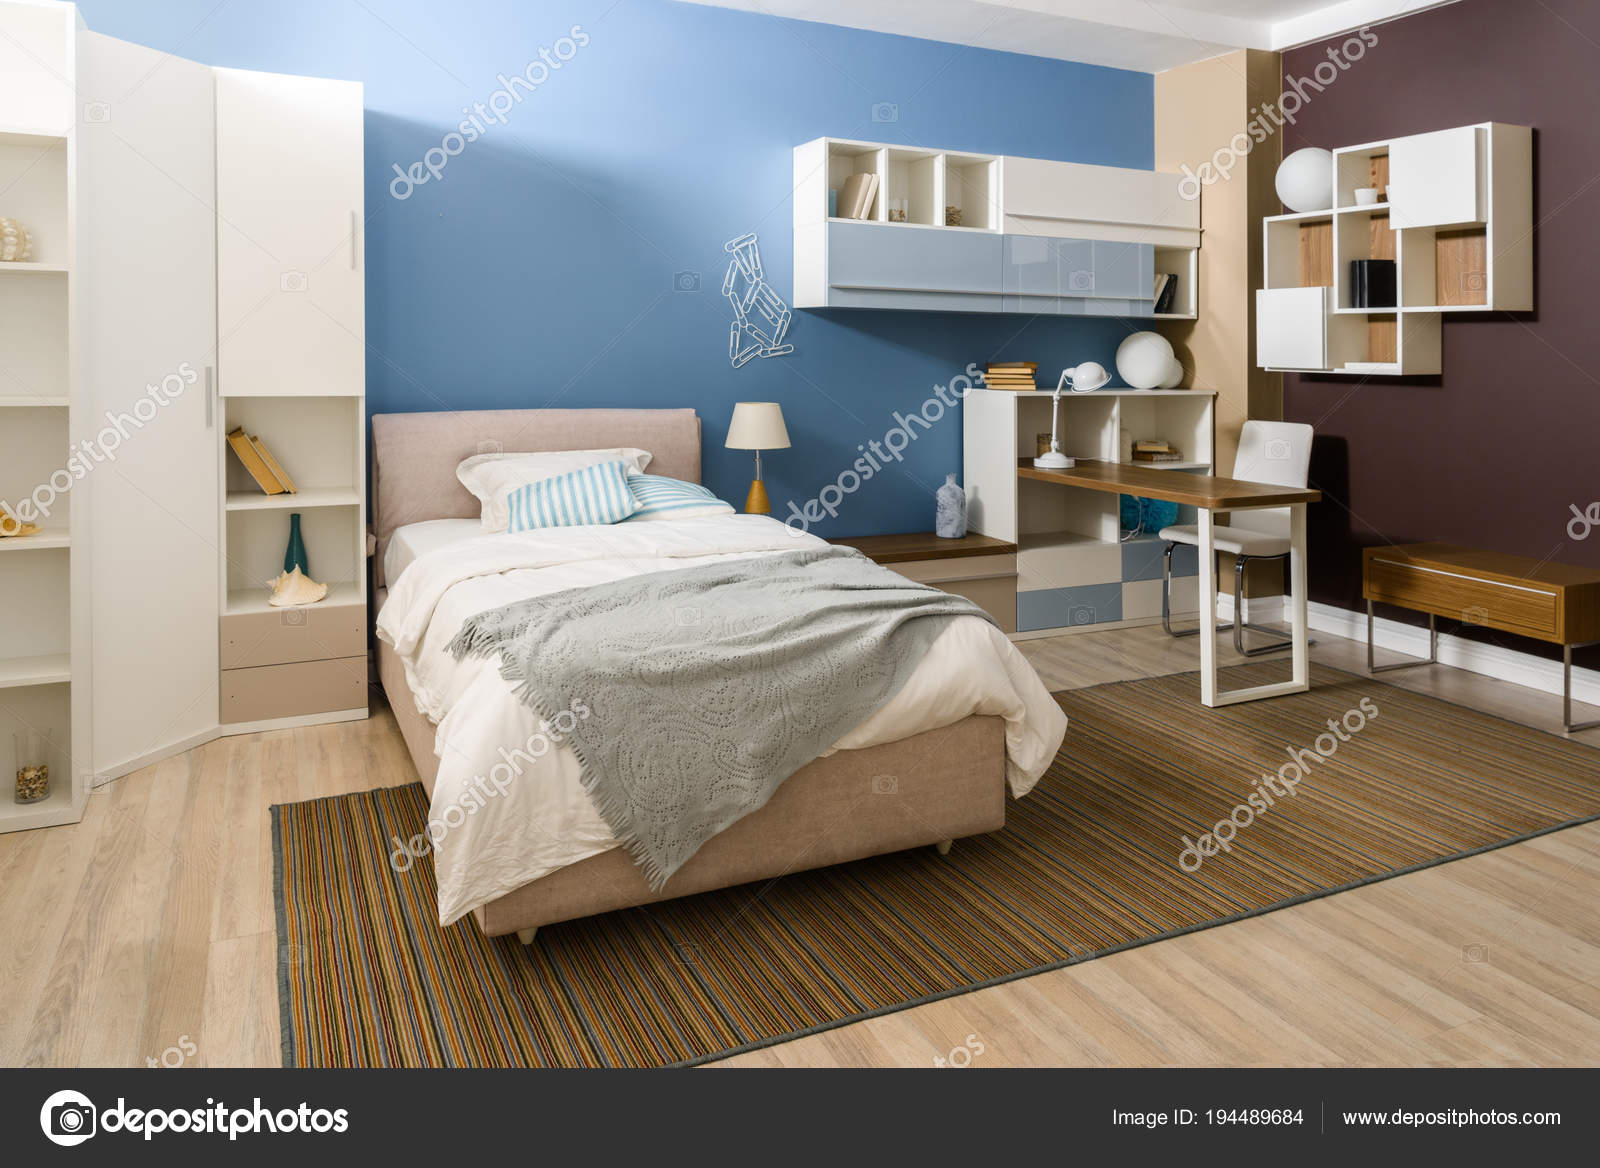 955 713 Bedroom Stock Photos Free Royalty Free Bedroom Images Depositphotos